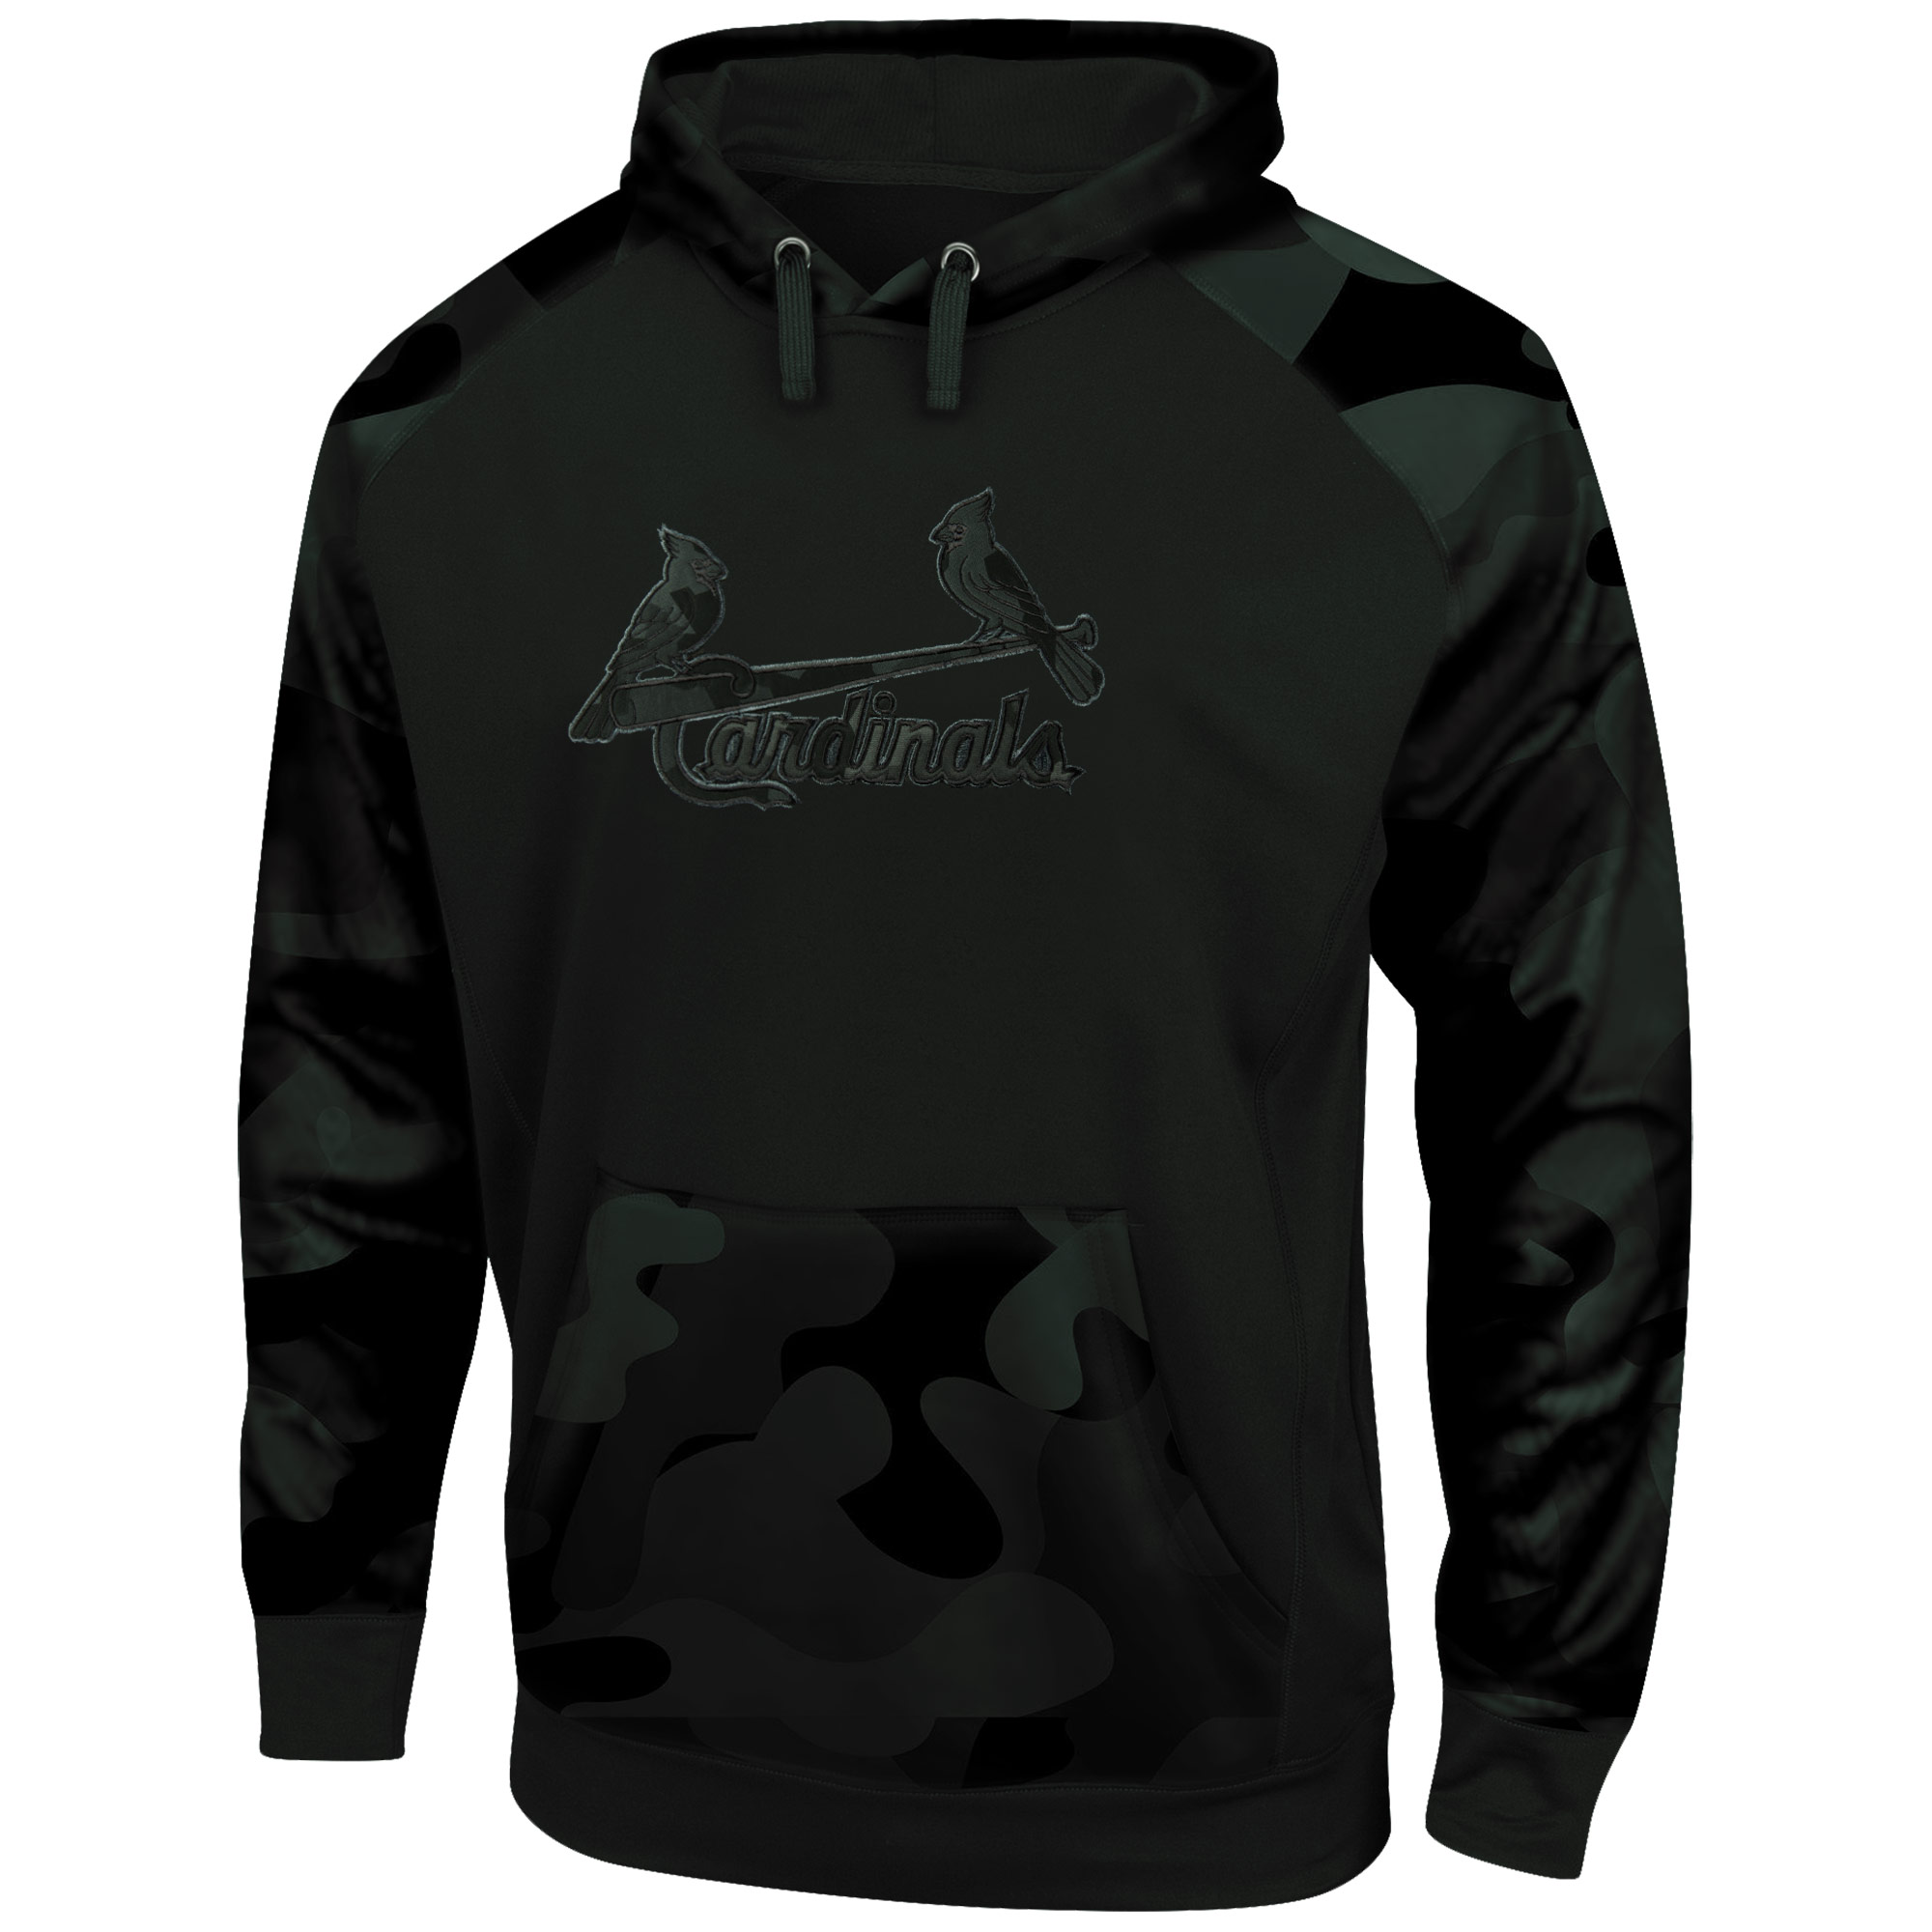 St. Louis Cardinals Majestic Big & Tall Pullover Hoodie - Camo/Black